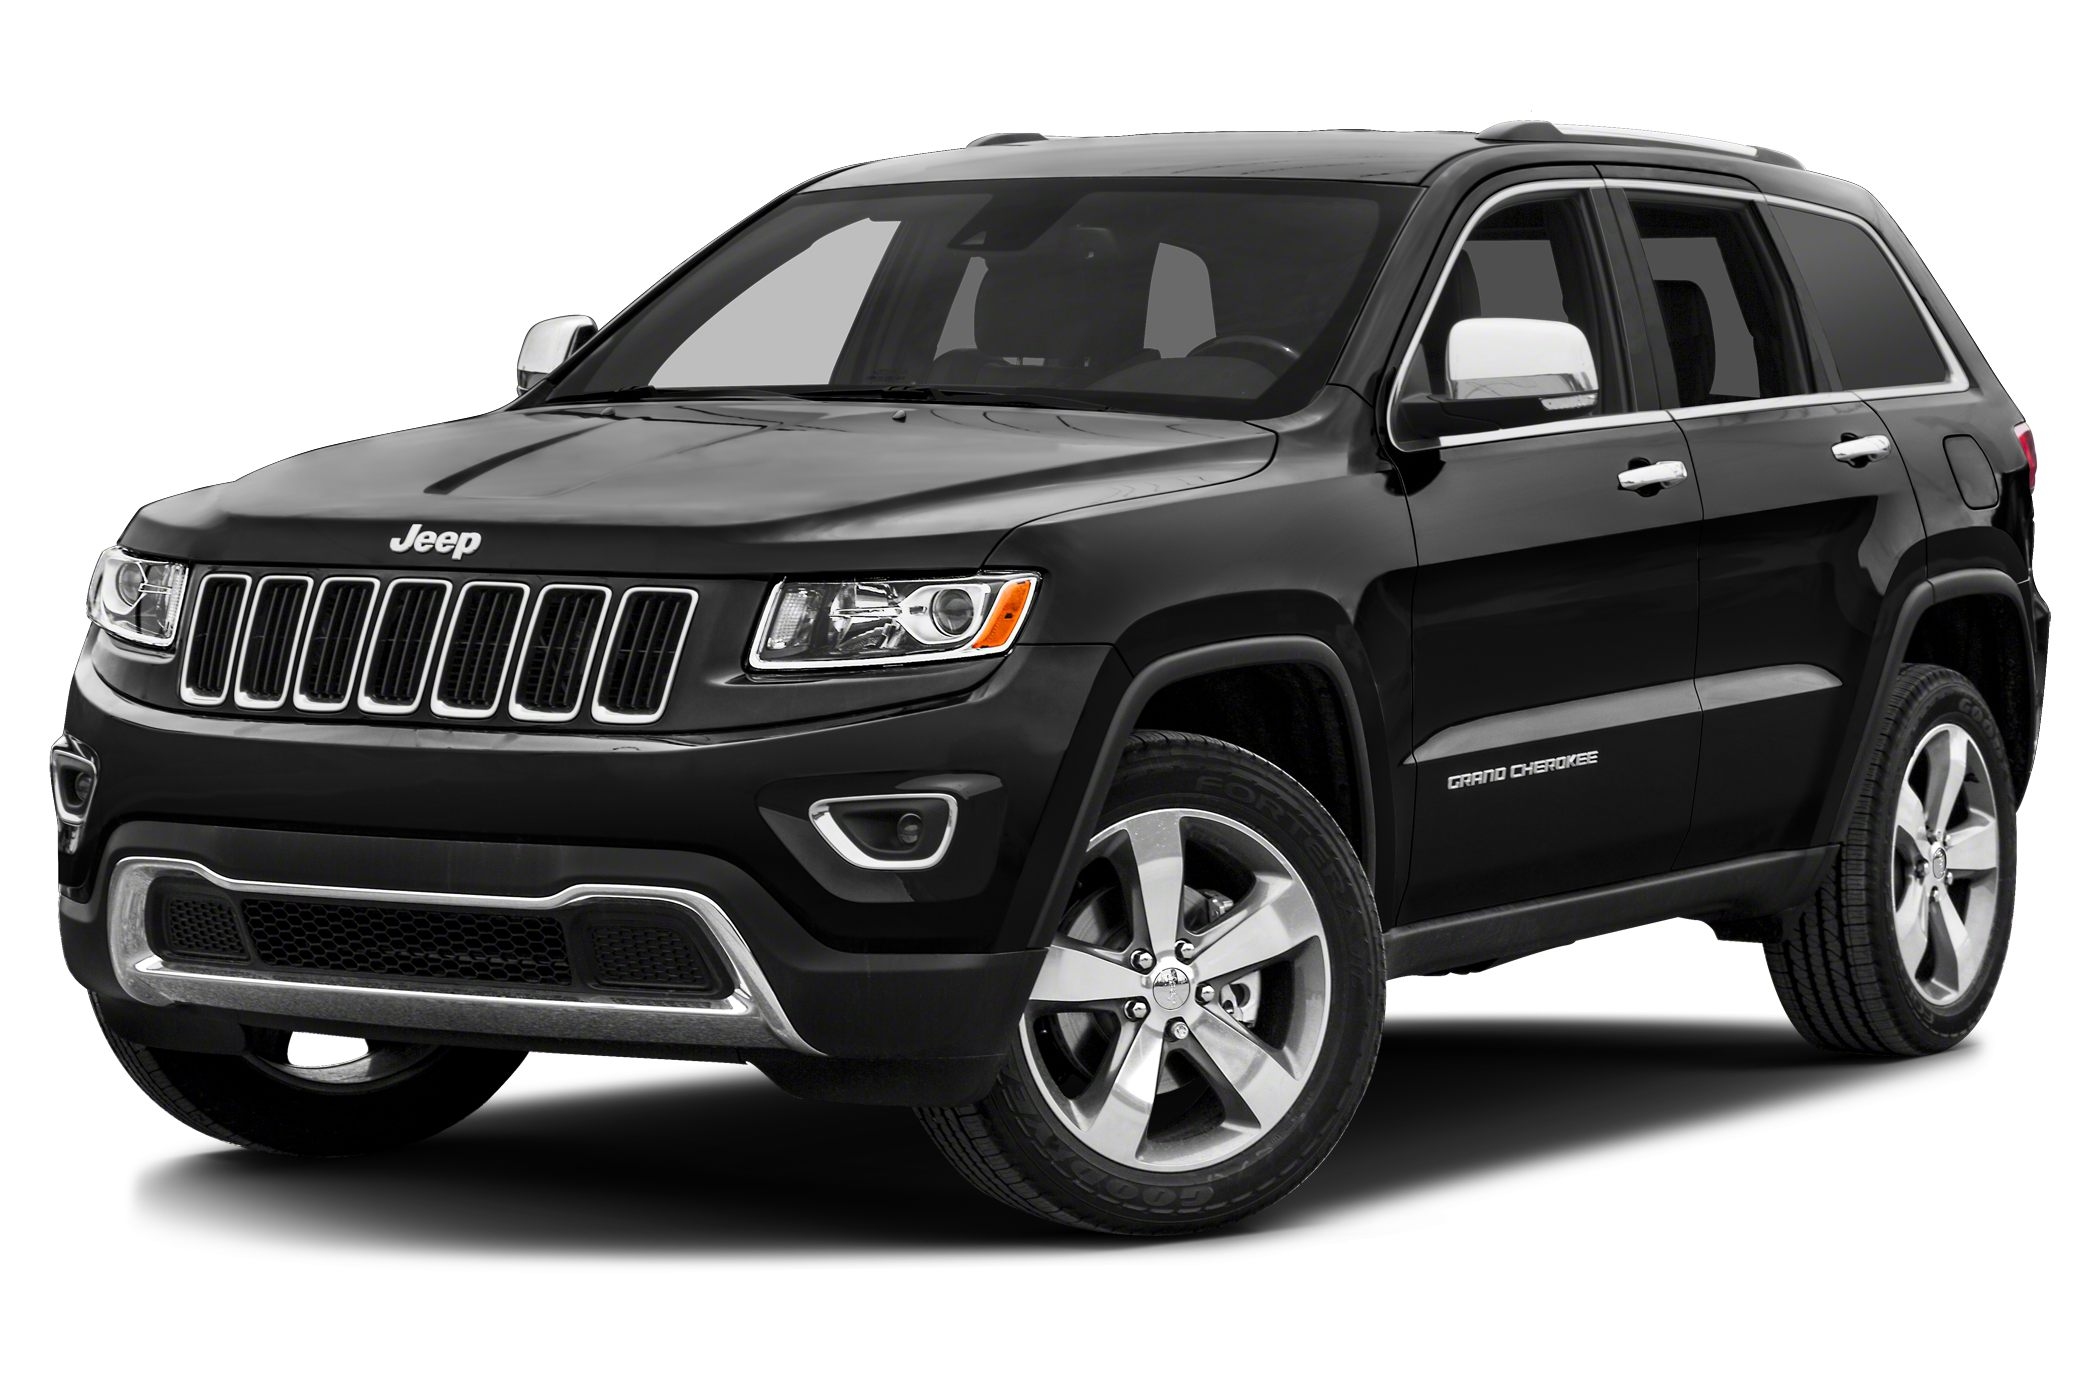 2014 Jeep Grand Cherokee Limited SUV for sale in Waseca for $32,499 with 20,530 miles